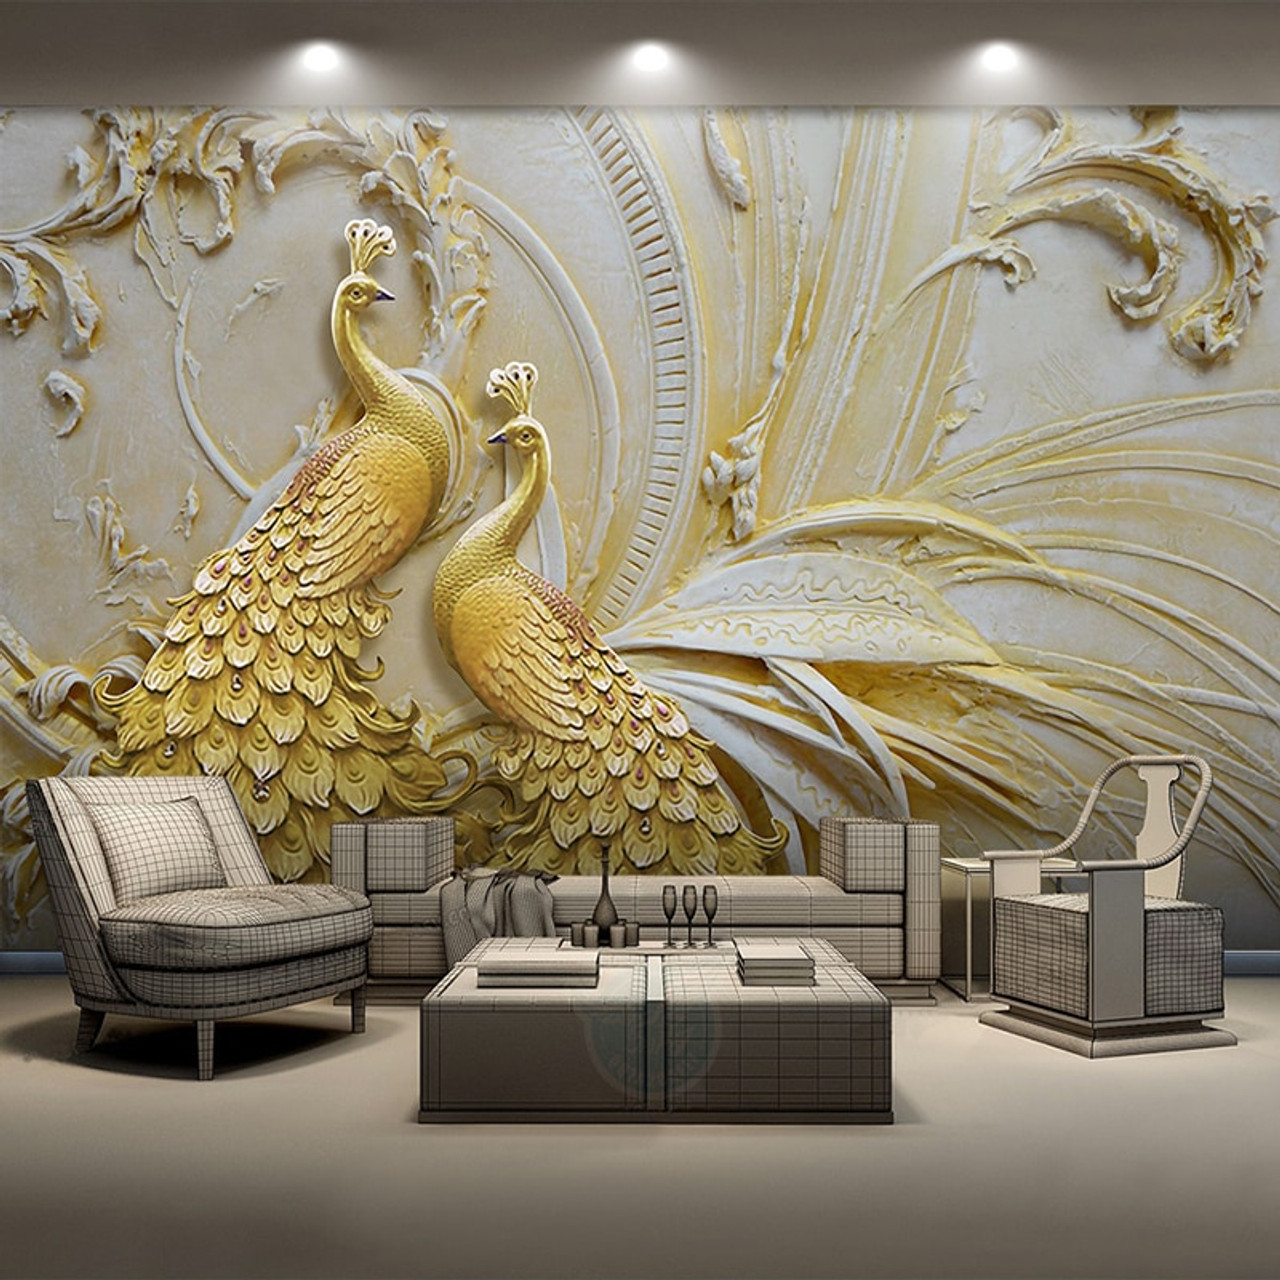 Custom Mural Wallpaper For Walls 3D Stereoscopic Embossed Golden Peacock  Background Wall Painting Living Room Bedroom Home Decor - OnshopDeals.Com